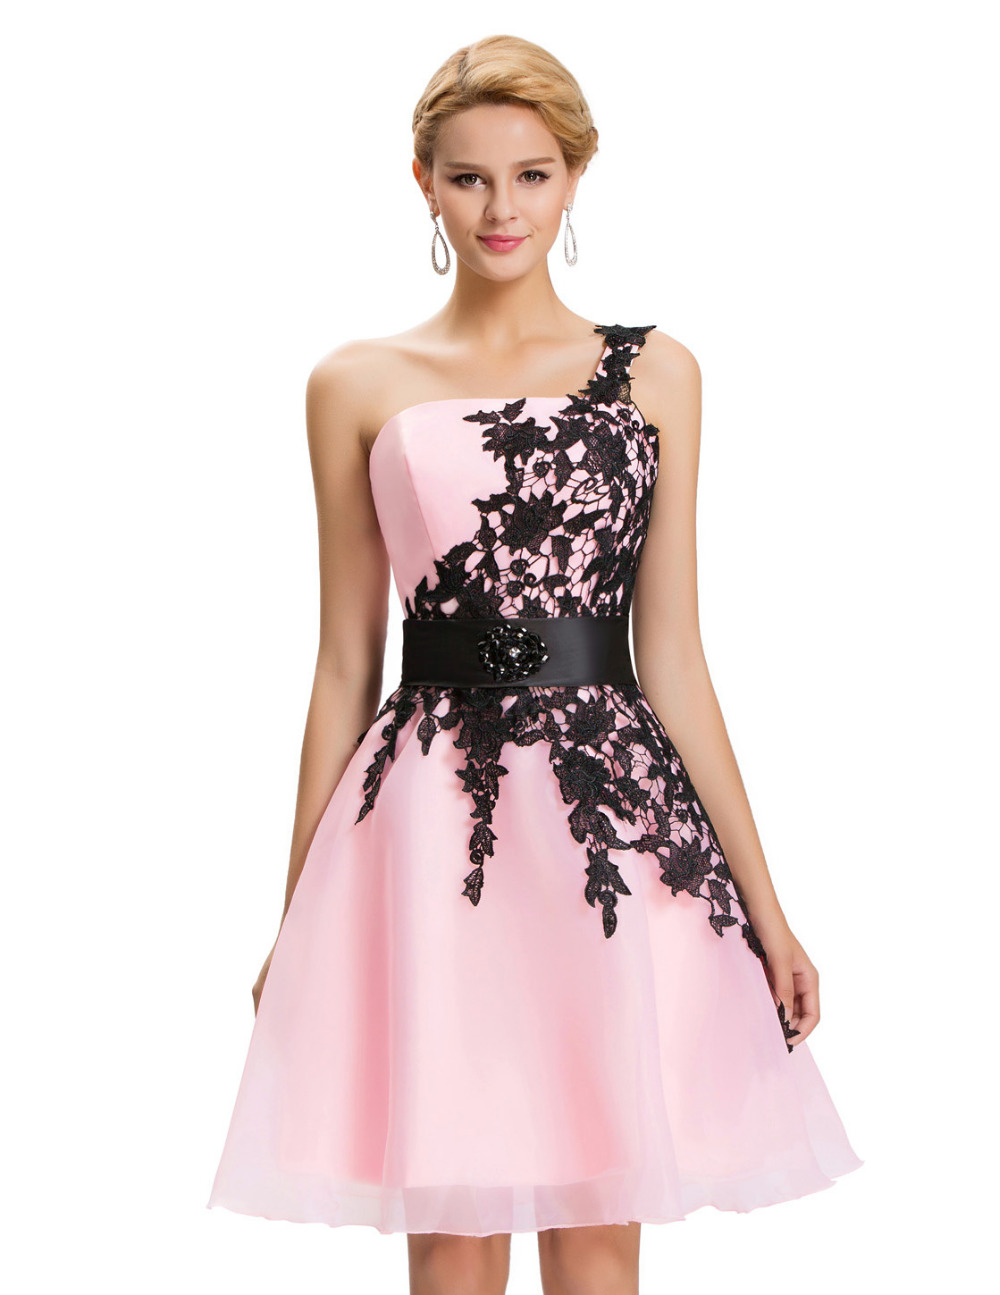 Brands New 2017 One Shoulder Black Lace Evening Gown Vestido de Noche  Vintage Short Evening Dress Formal Pink Gowns 4288 52be91665f4a